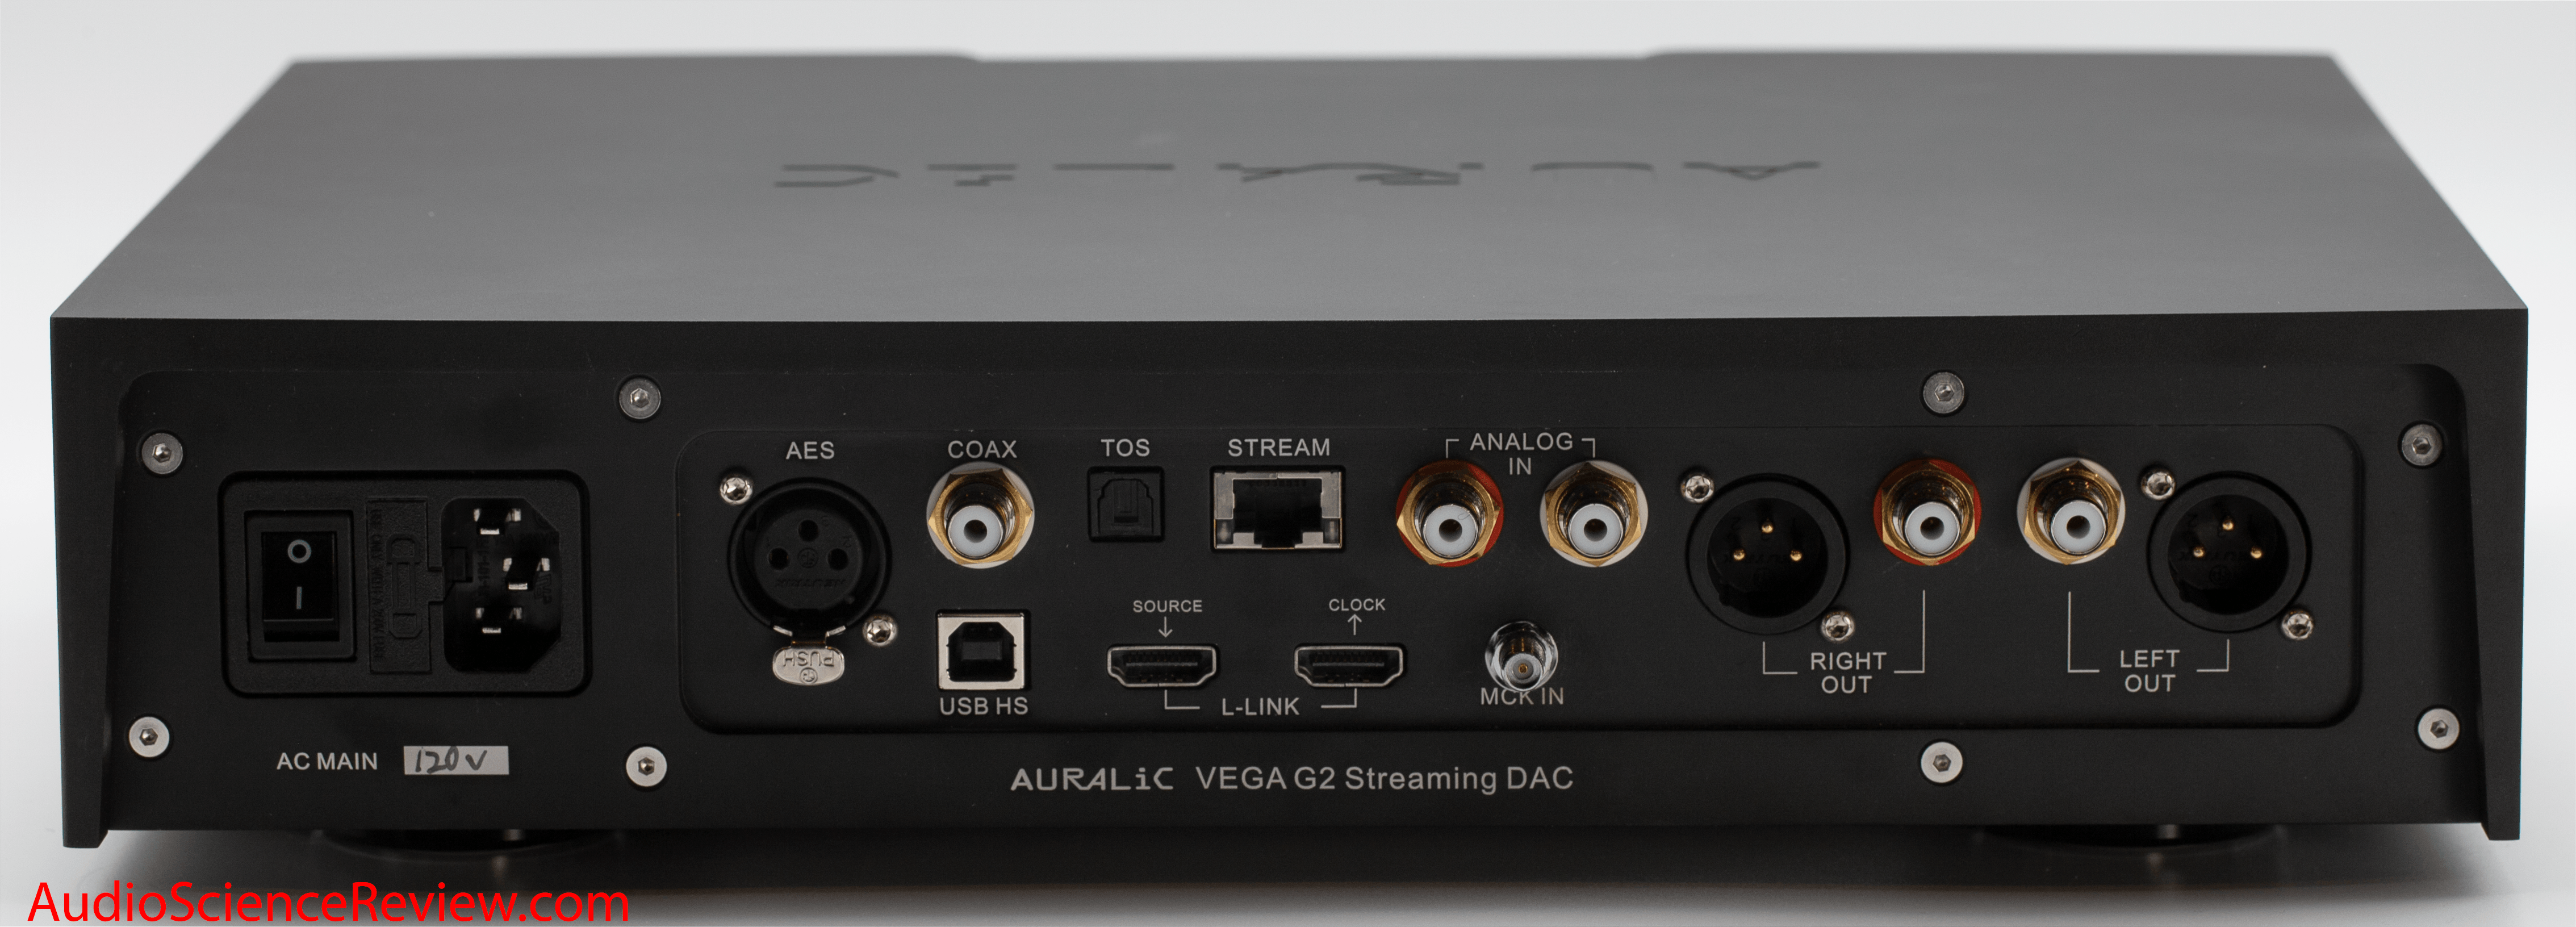 Auralic Aries G2 Music Streamer Audiophile Music Server and DAC Back Panel Connectors Audio Re...png